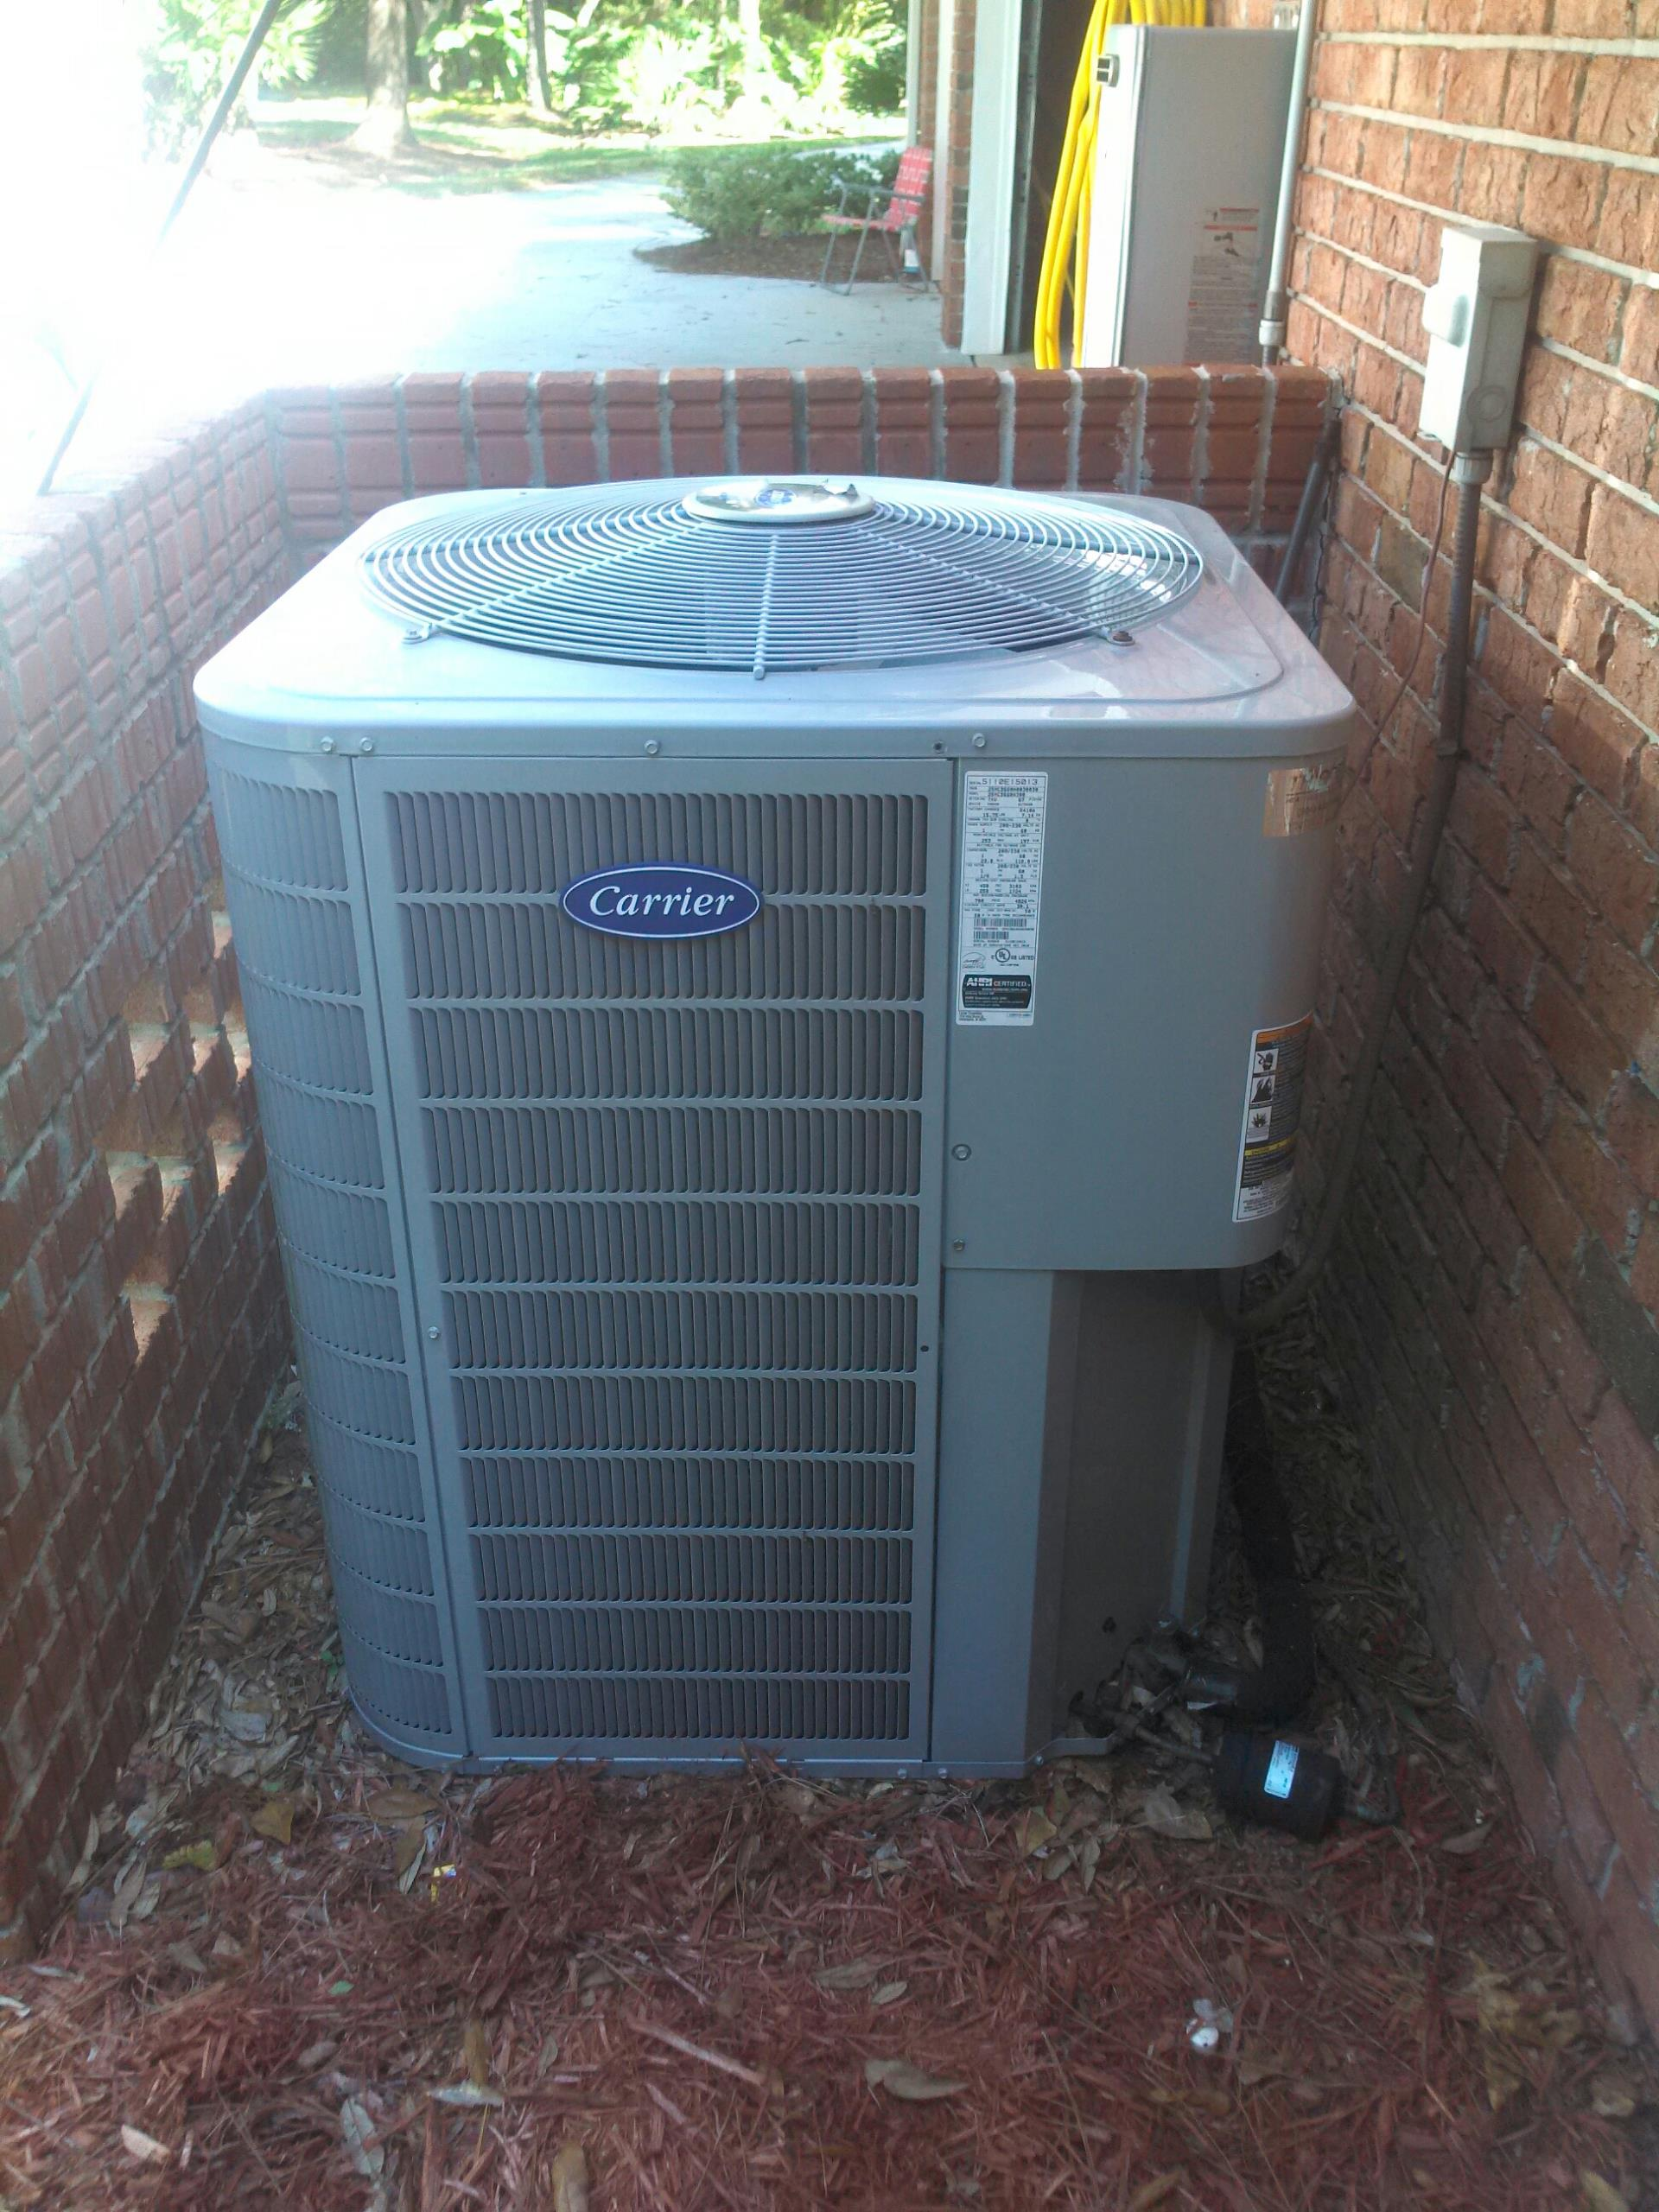 Fruit Cove, FL - Performed maintenance on two heat pump systems.  One Carrier and one Trane